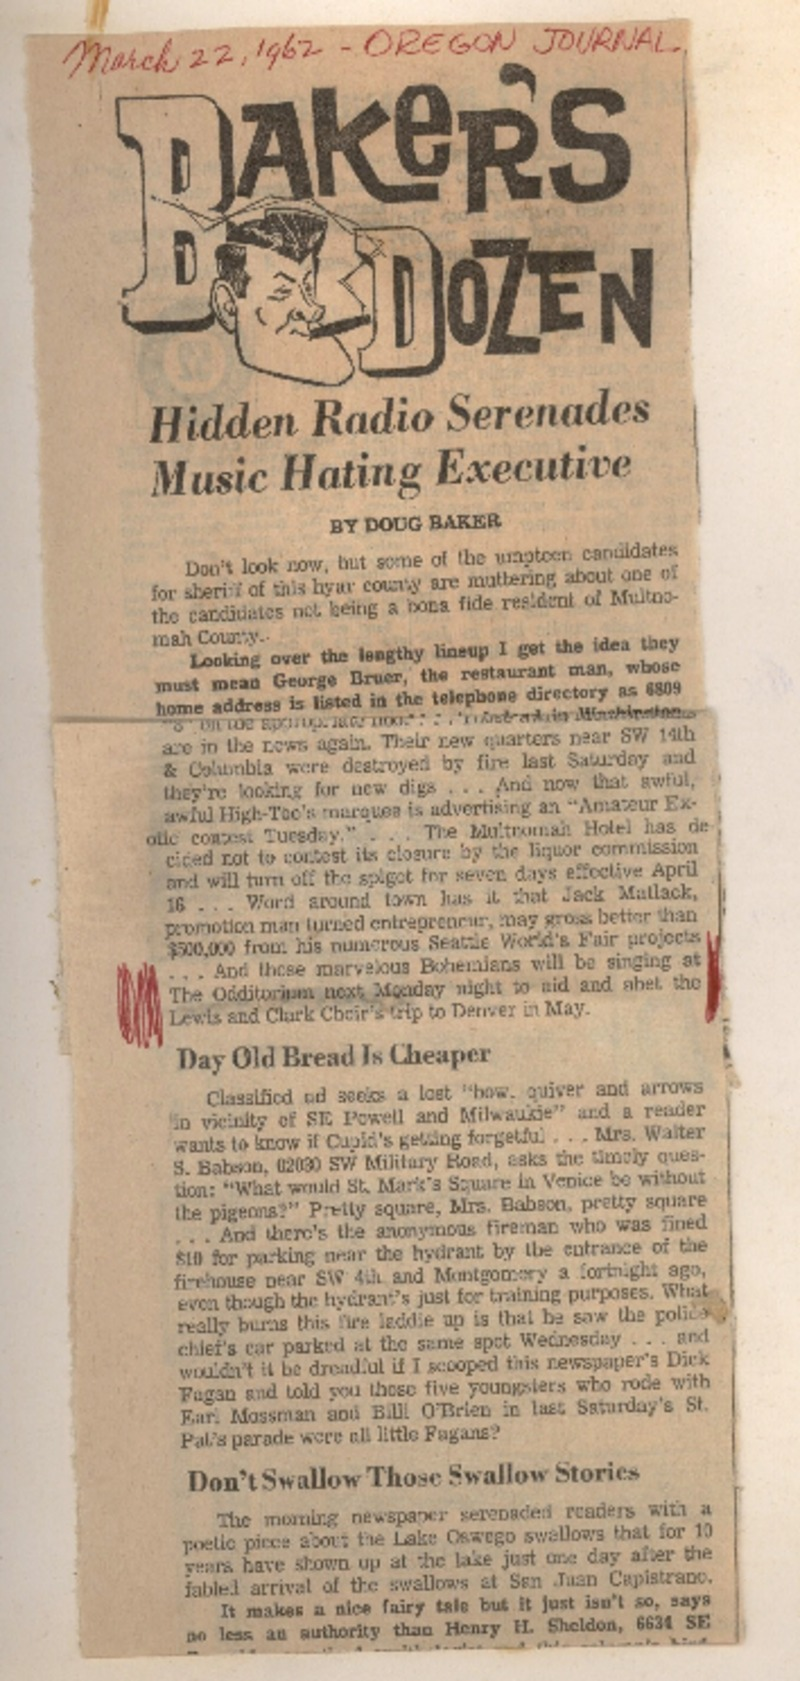 """On to Denver"" newspaper clippings, 1962.pdf"